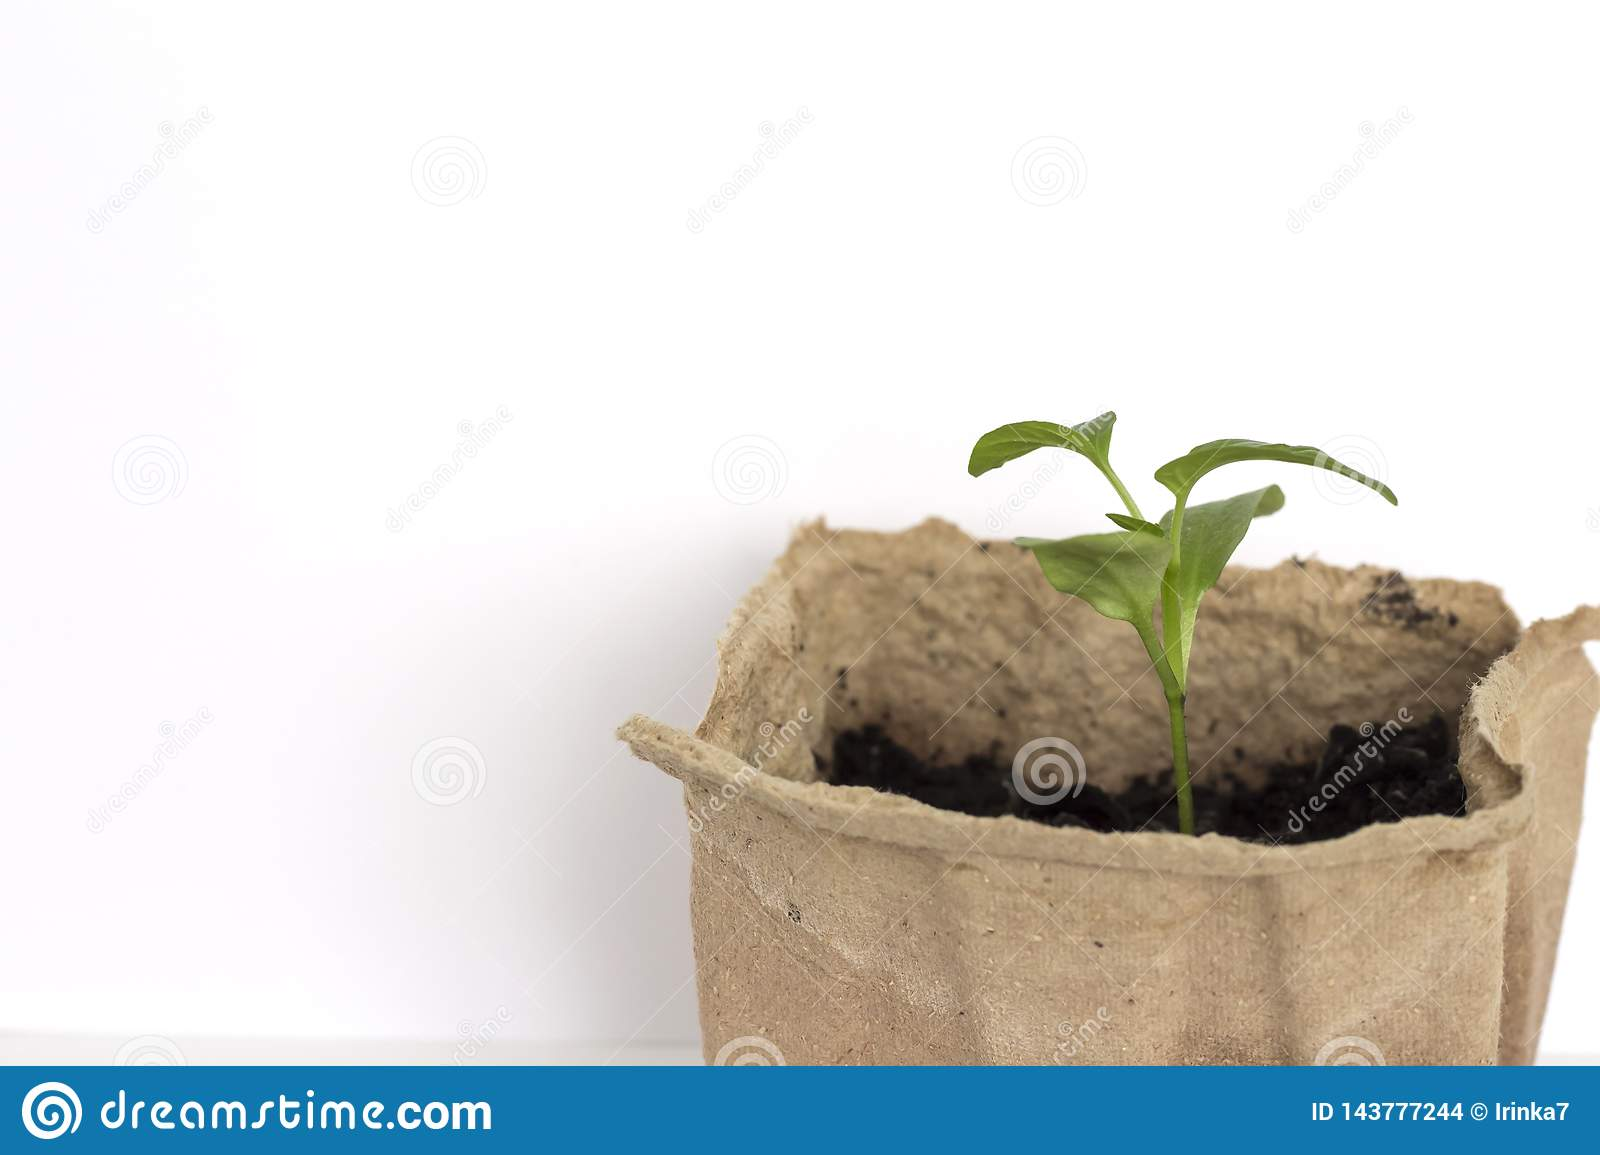 A small green pepper sprout growing in an eco-friendly organic pot on a white background with a copy of the space